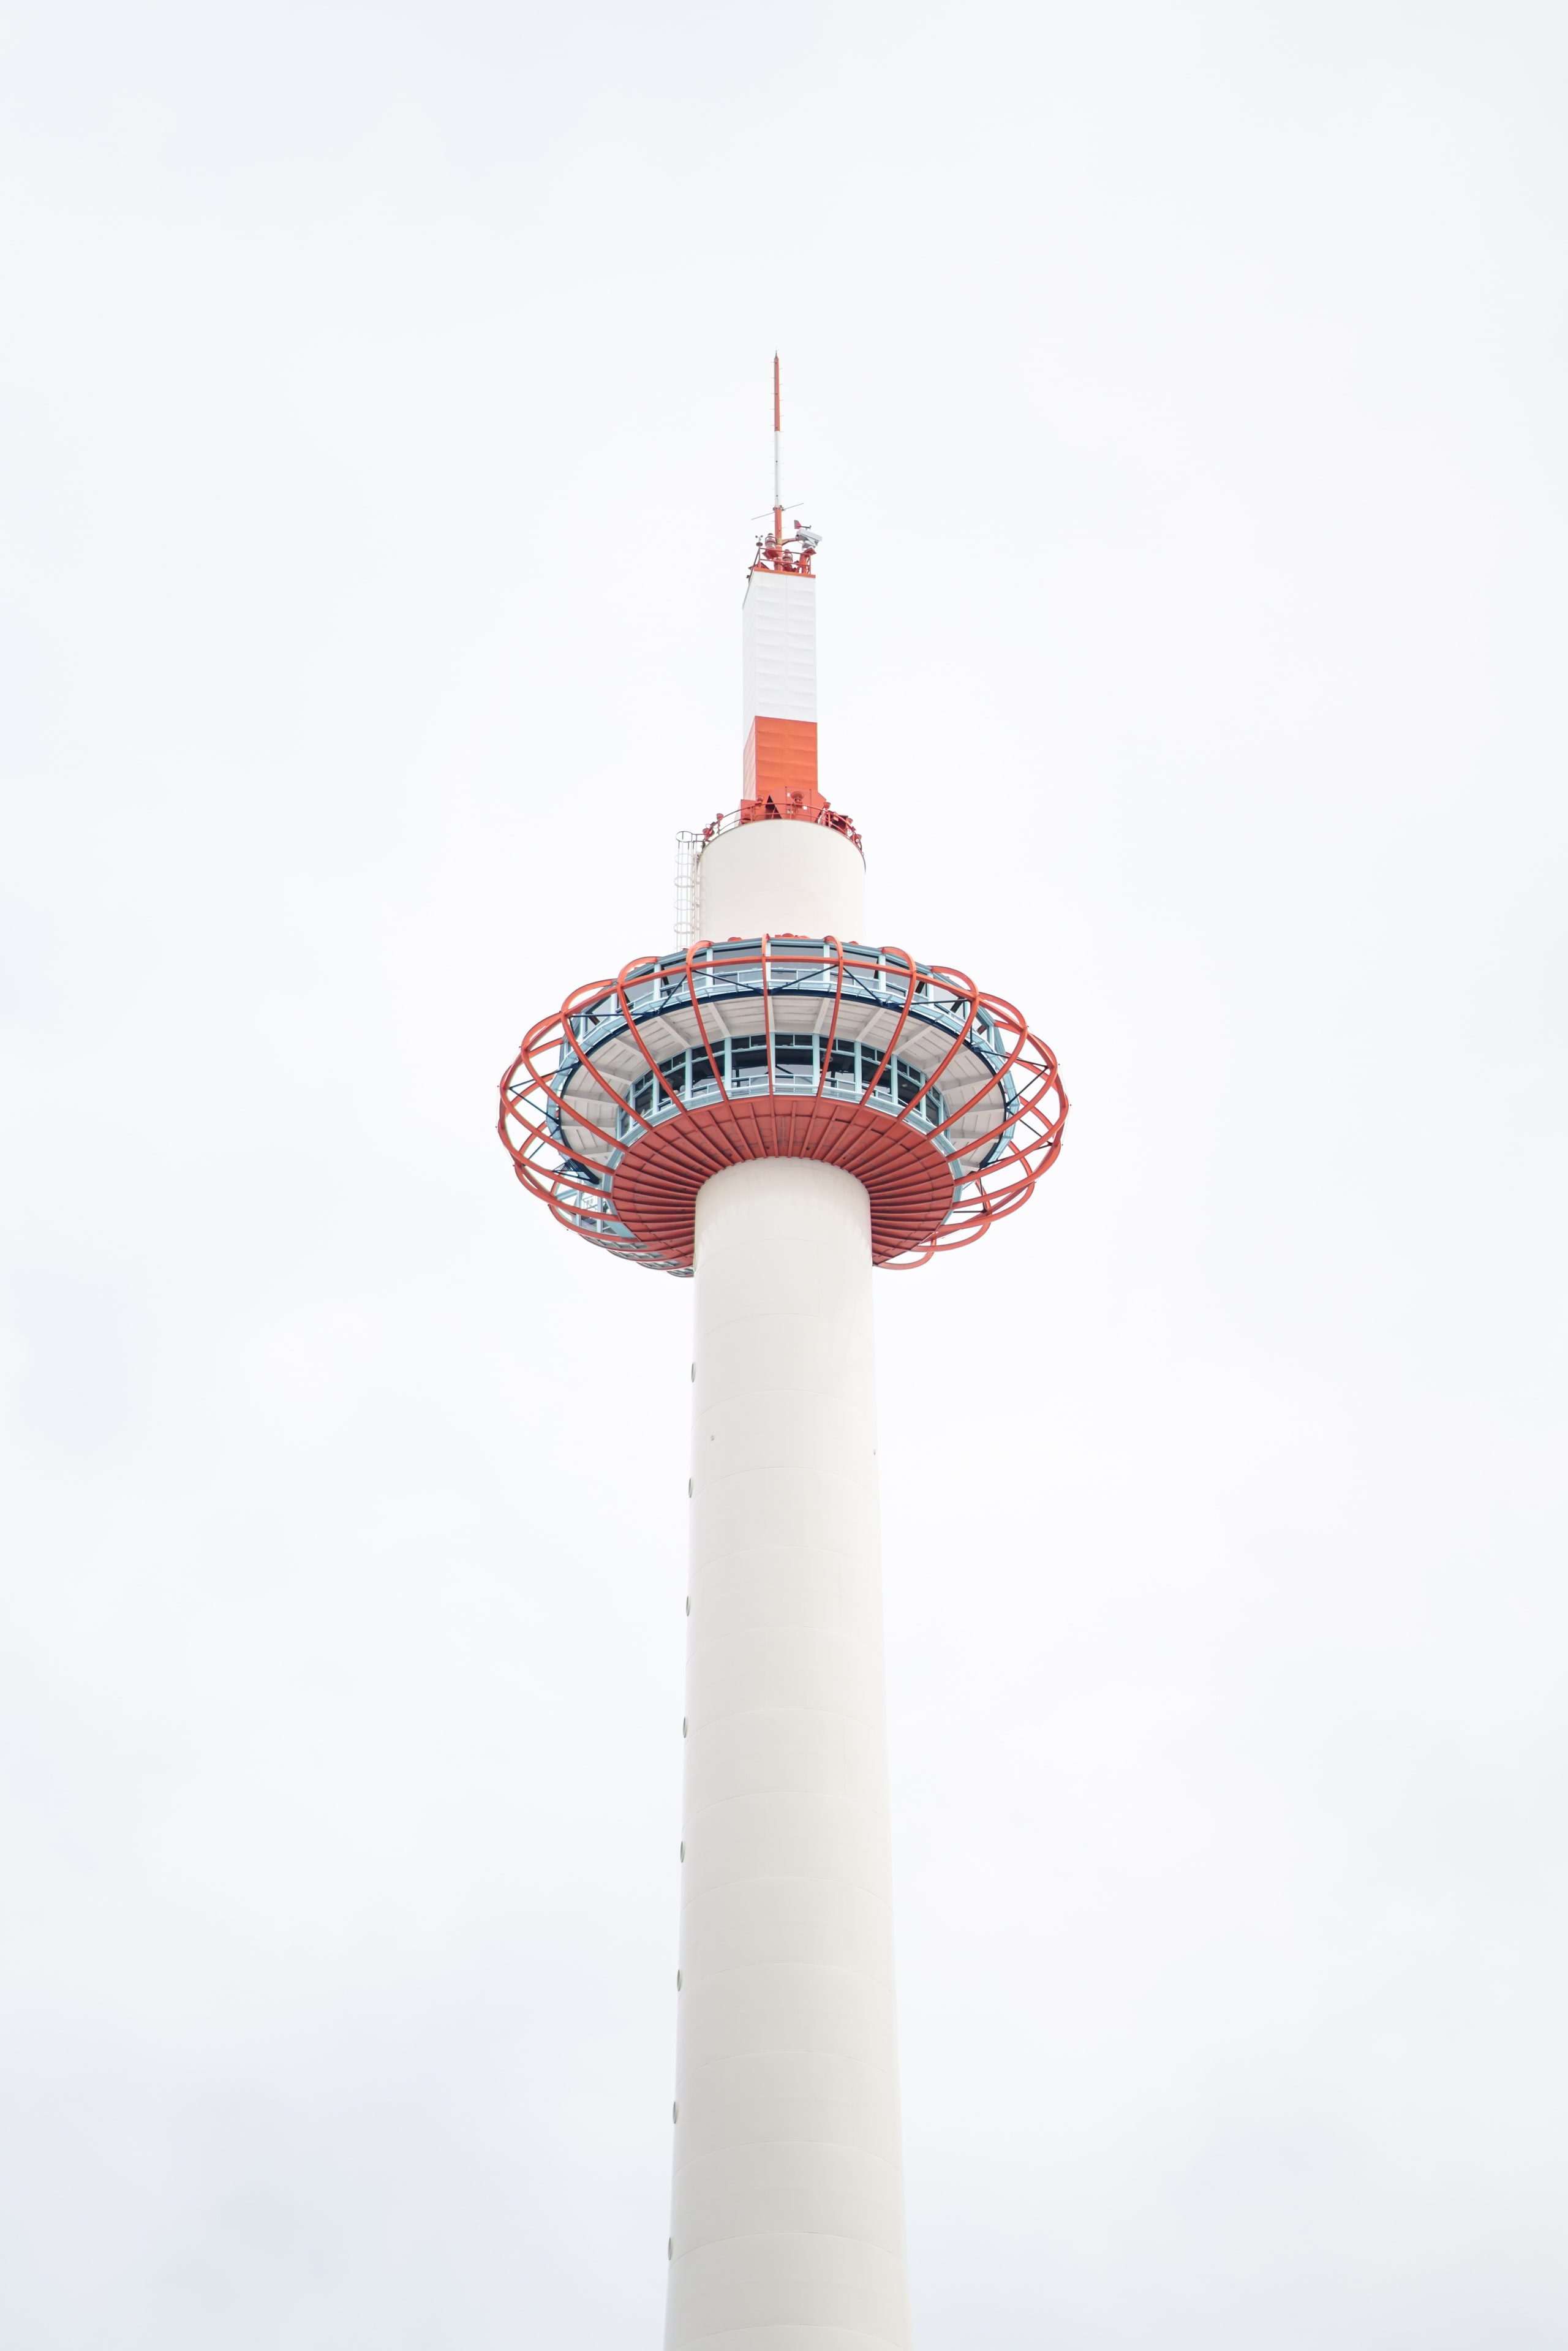 low-angle photography of white and red tower